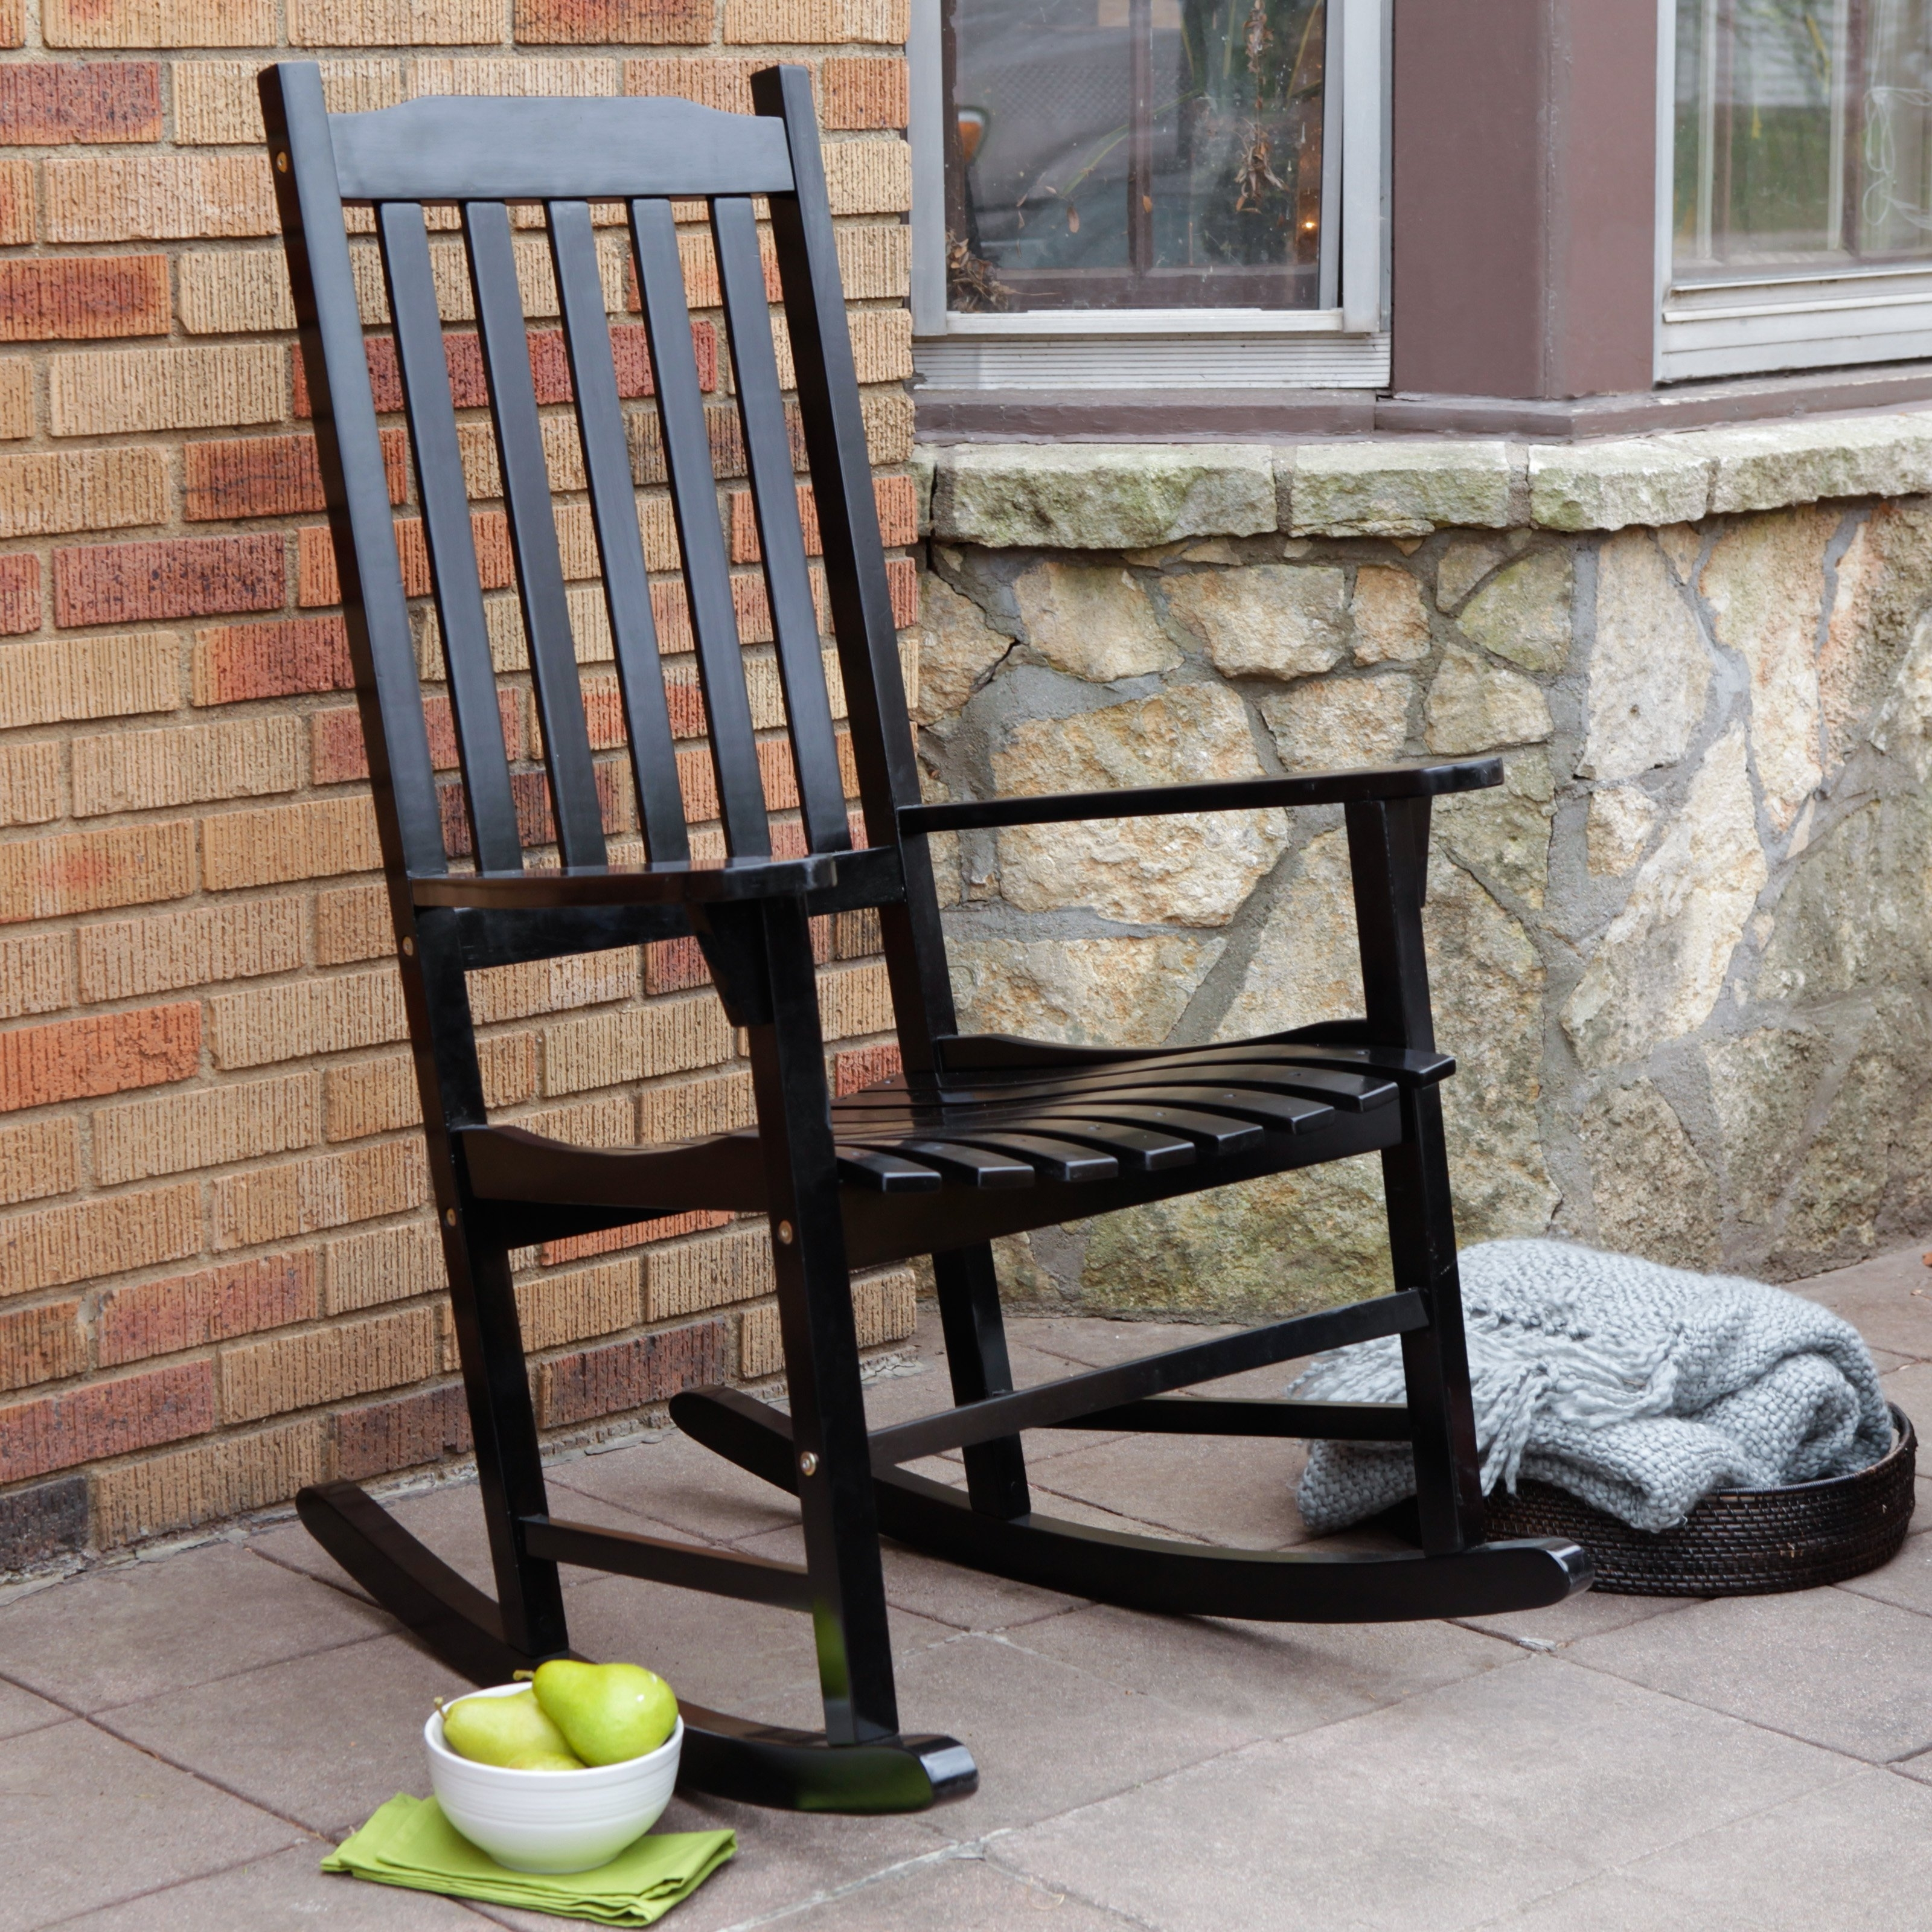 Popularity Gaining Outdoor Rocking Chairs – Carehomedecor Inside Widely Used Wooden Patio Rocking Chairs (View 14 of 20)